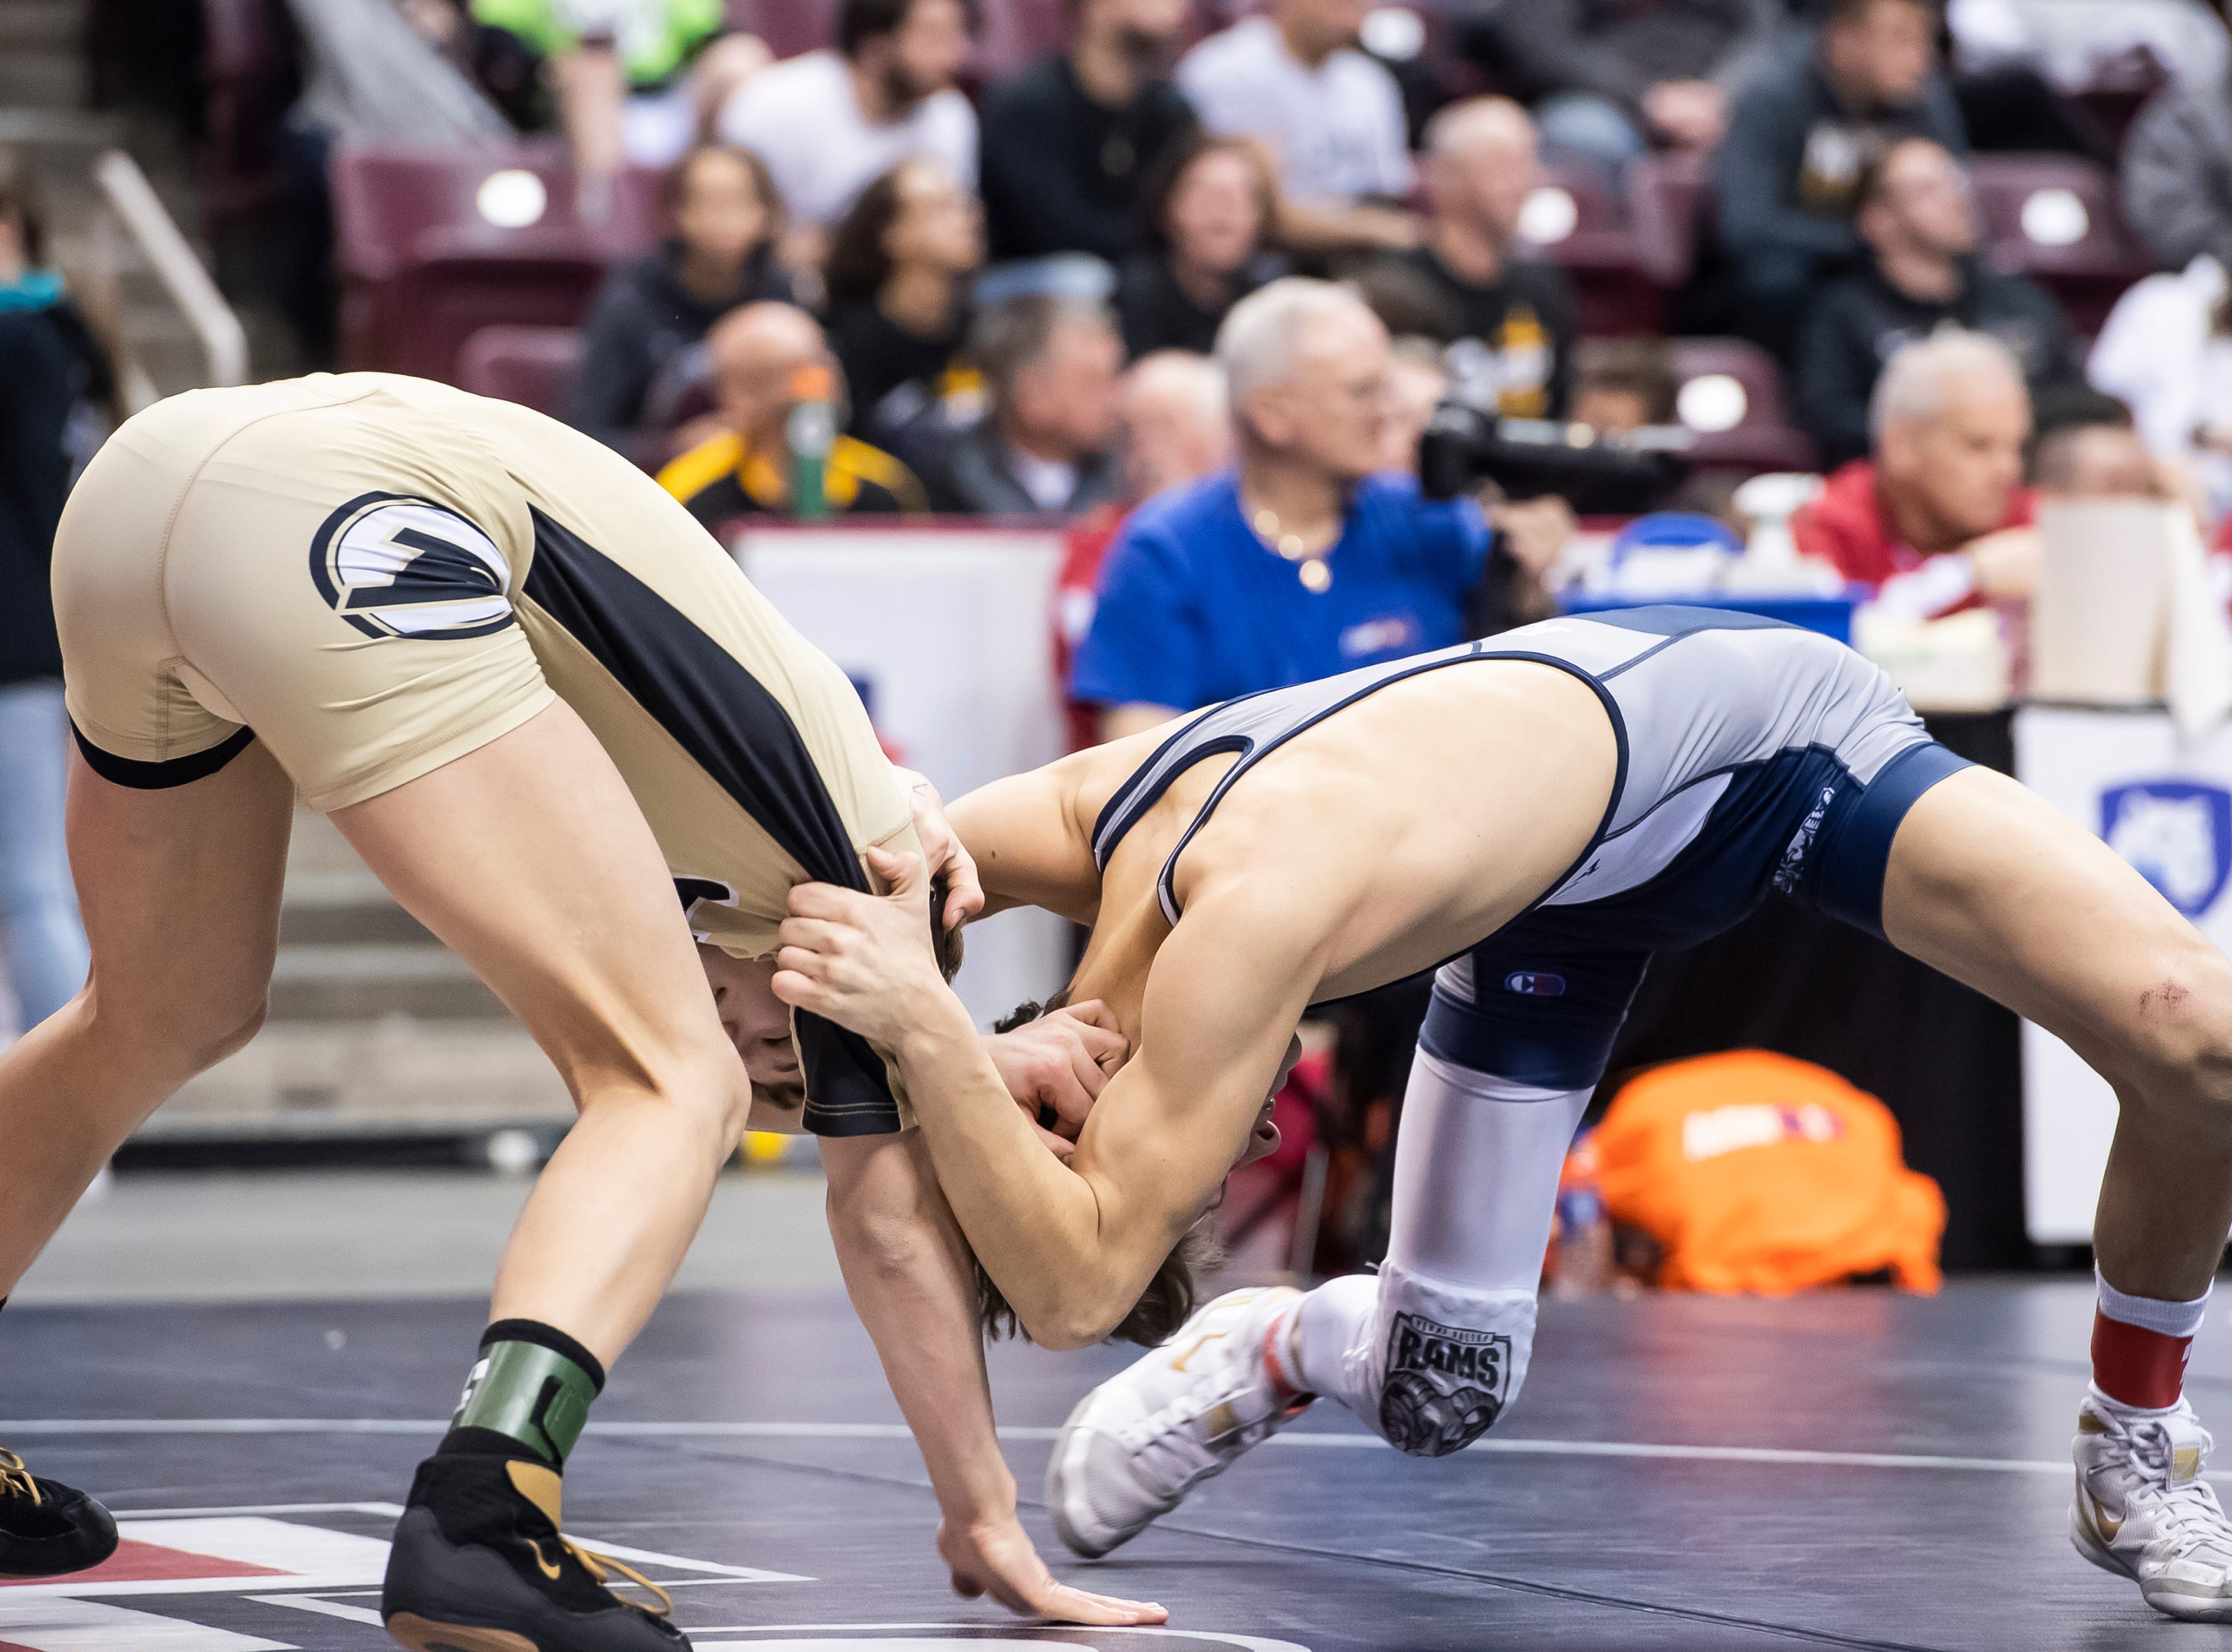 Biglerville's Blake Showers, left, wrestles Penns Valley's Baylor Shunk during the PIAA 2A 120-pound 7th-place bout at the Giant Center in Hershey Saturday, March 9, 2019. Shunk won 10-5.